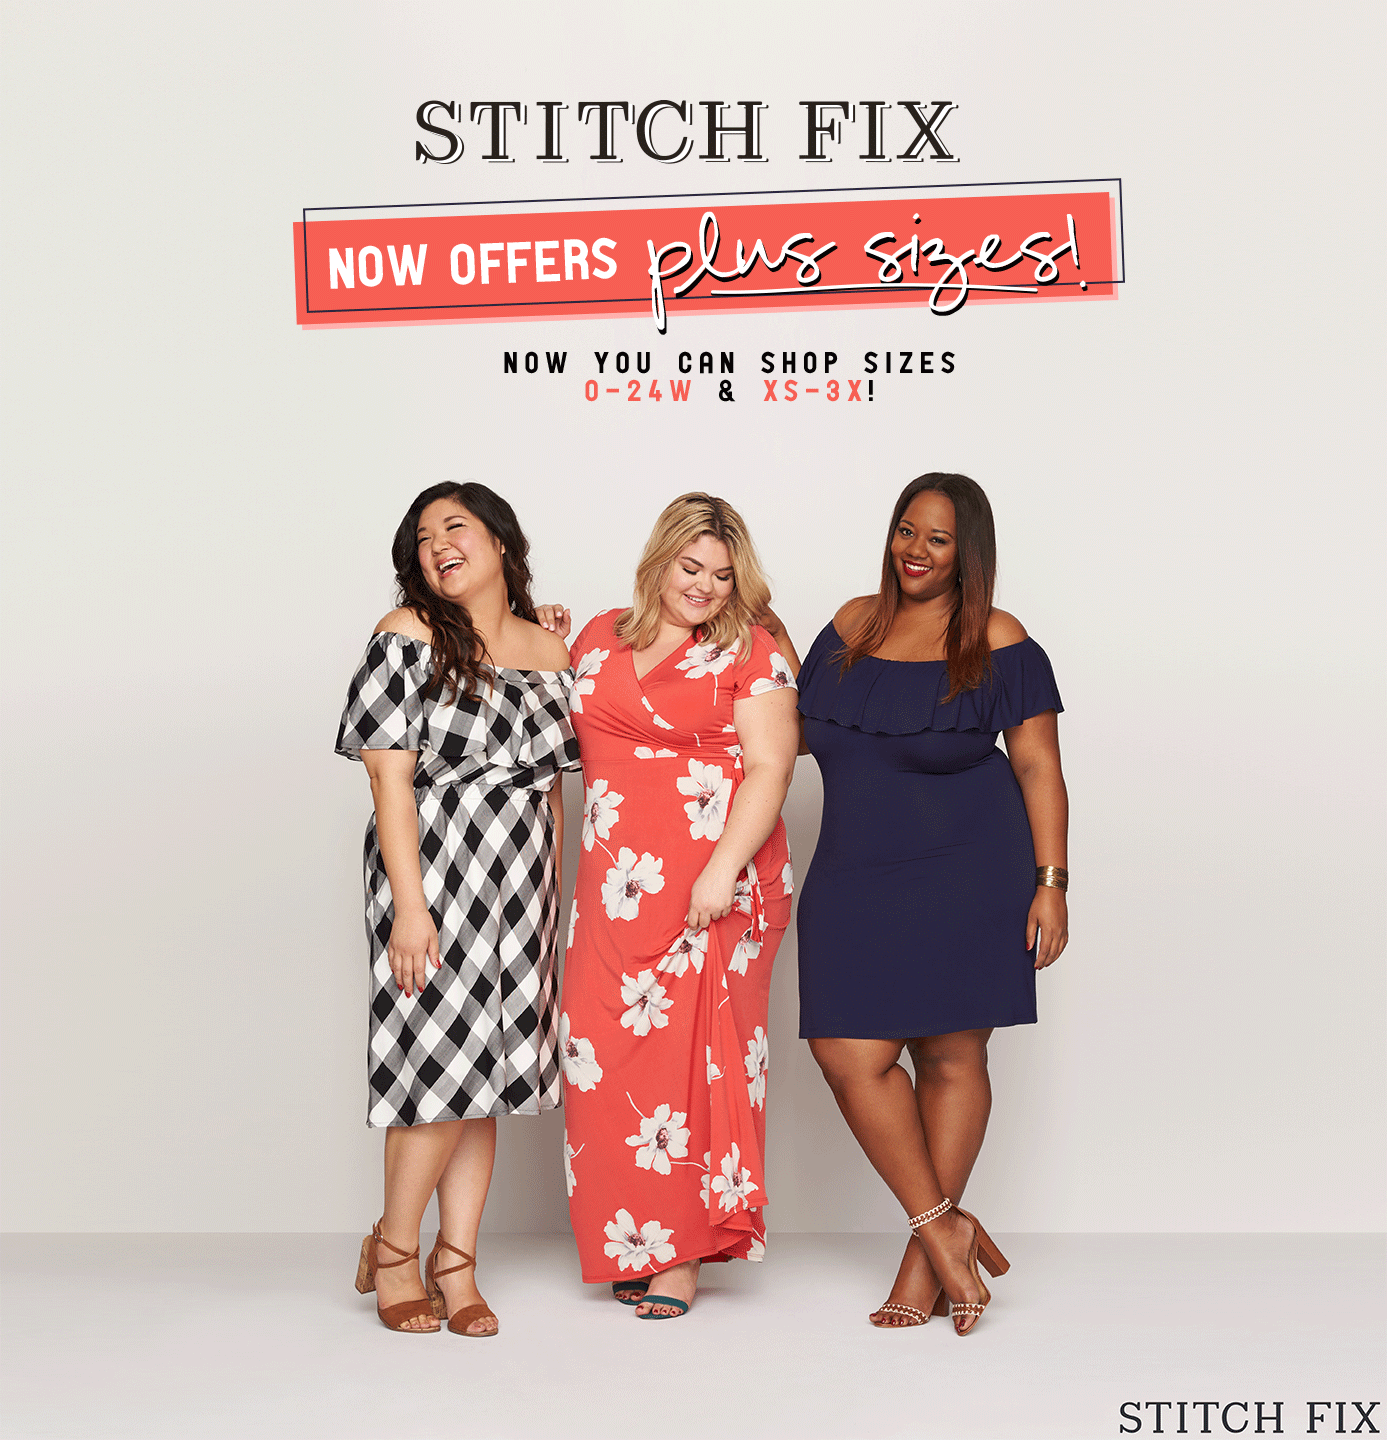 Stitch Fix Now Has Plus Sizes! Shop Sizes 0-24W & XS-3X!